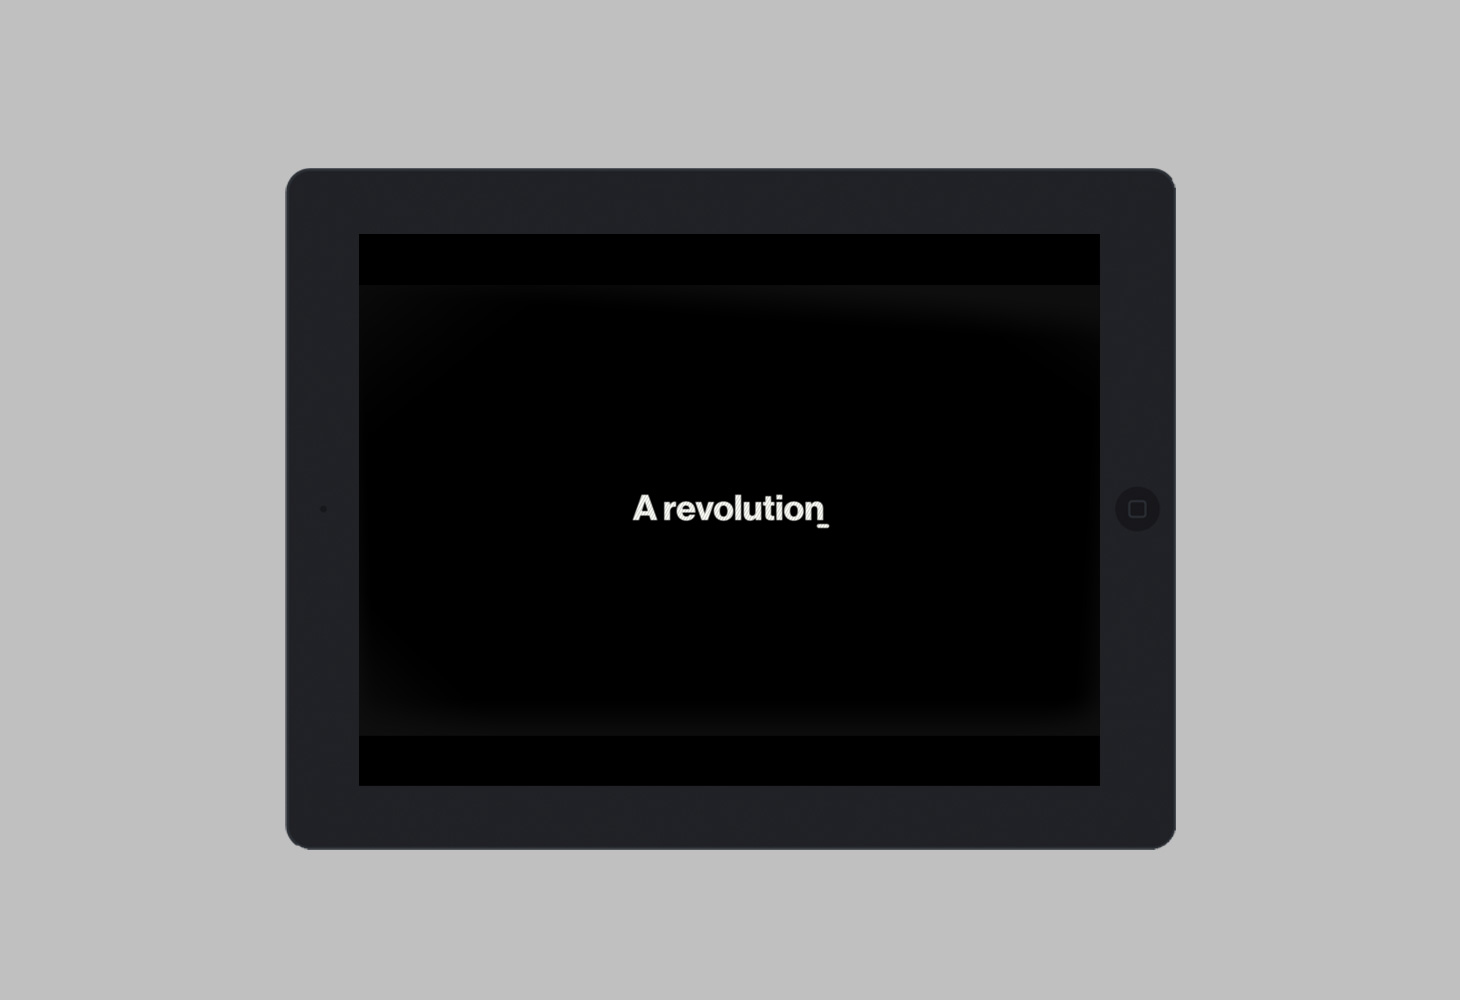 Andesign - Massivit 1800 - A revolution